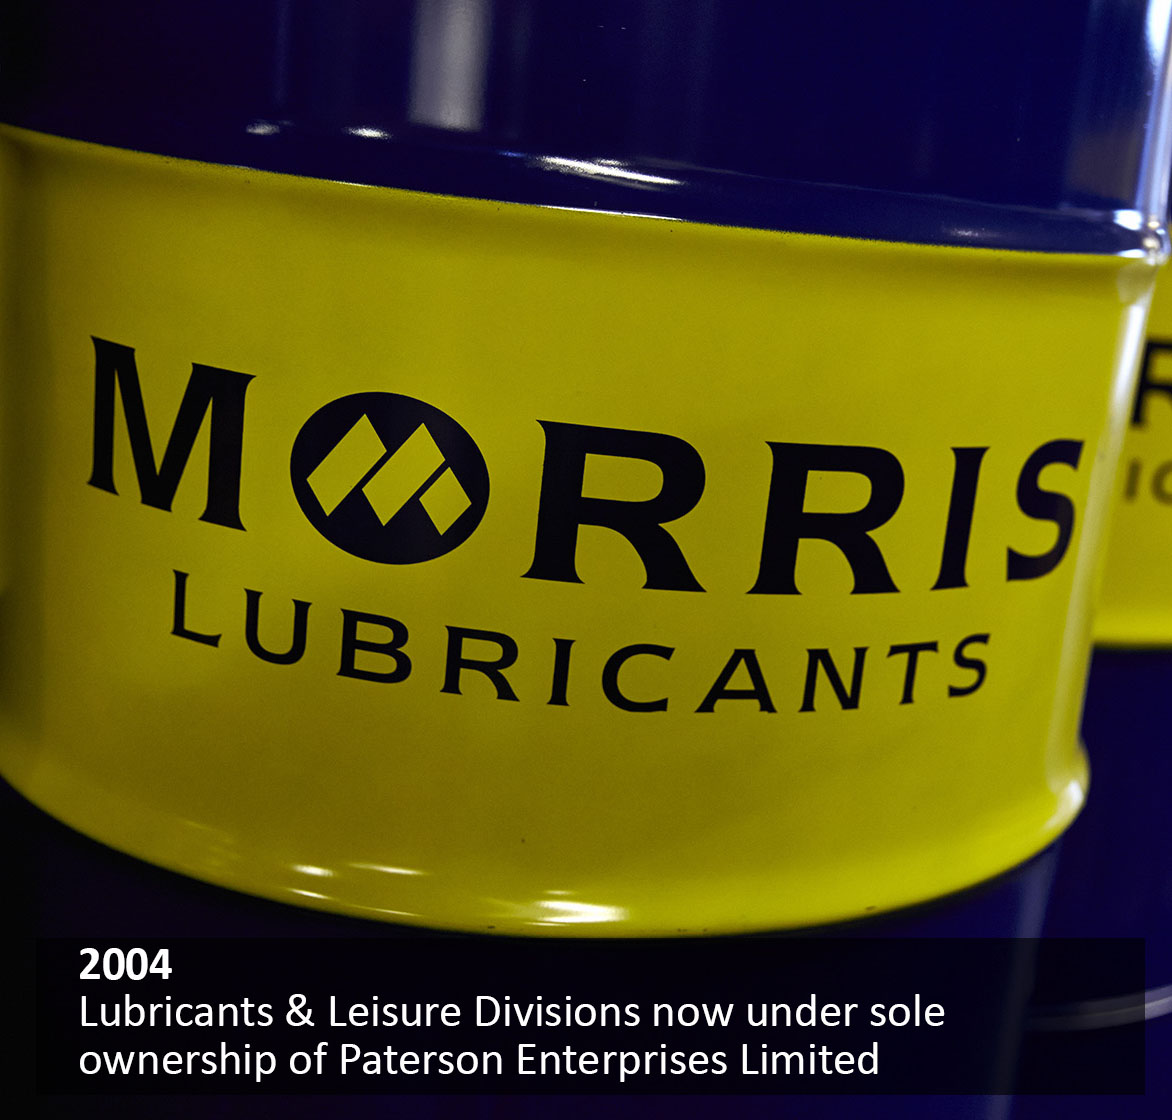 Lubricants & Leisure Divisions now under sole ownership of Paterson Enterprises Limited